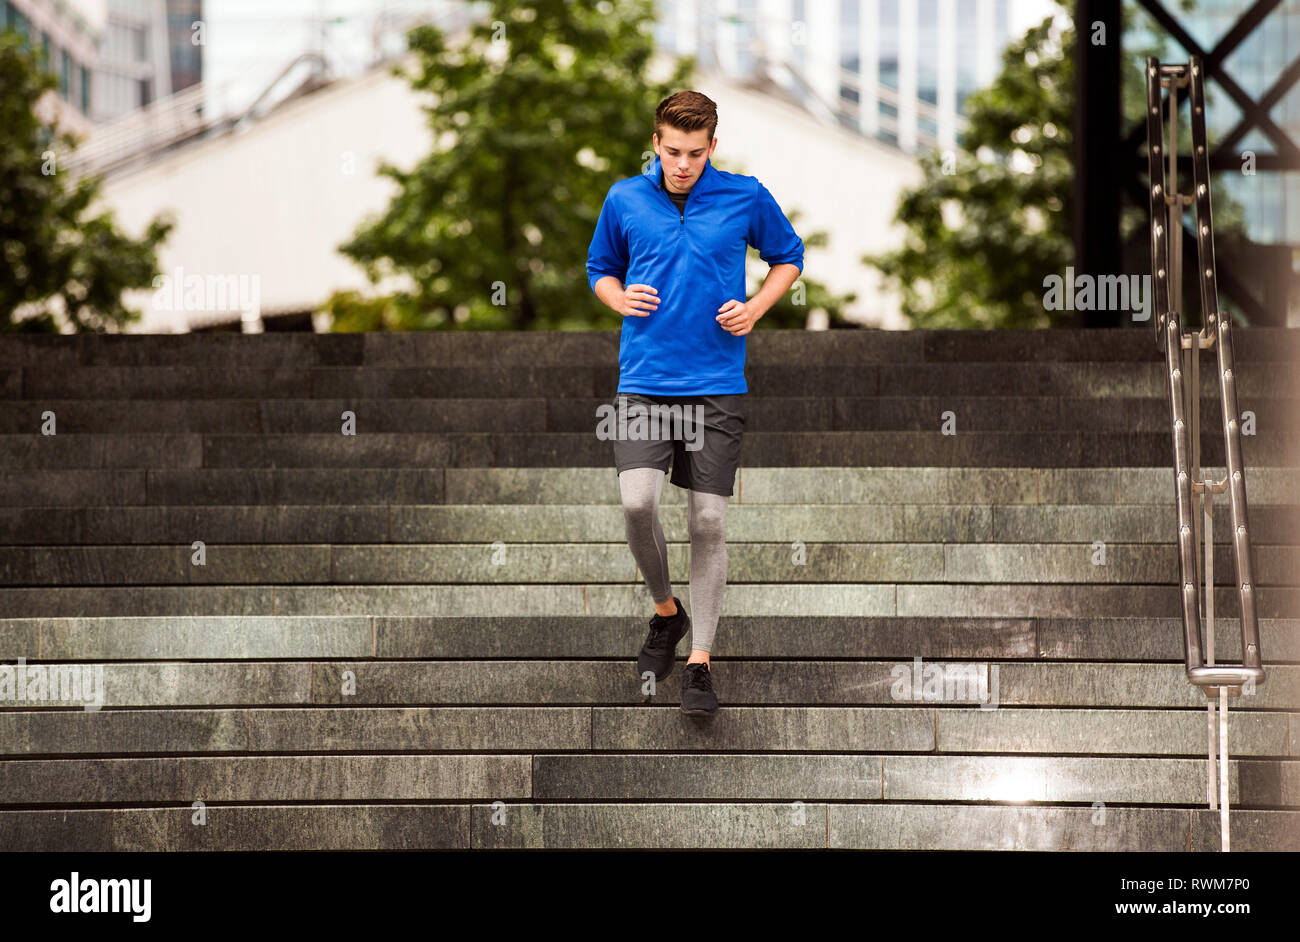 Young runner jogging down steps, London, UK - Stock Image